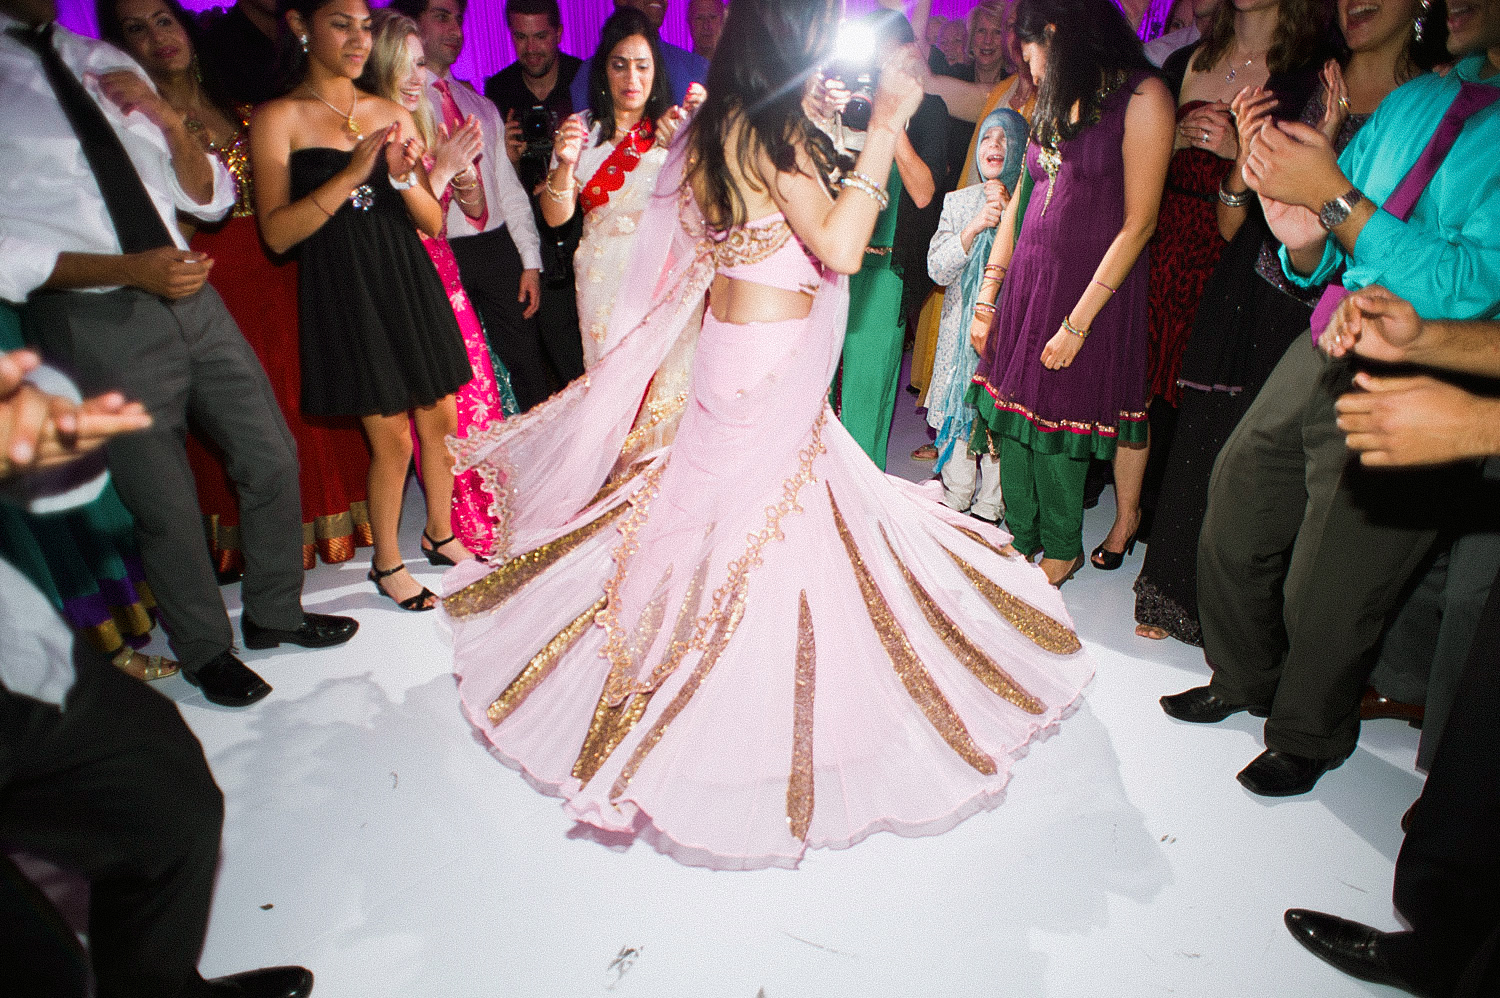 indian bride wears a pink and gold wedding lengha for her indian wedding in florida on the beach in palm coast florida as Destination Wedding Photographer Lexia Frank - an award winning indian wedding photographer - photographs her indian wedding on film, as she is a fine art wedding film photographer for destination weddings and luxury weddings worldwide. vizcaya miami wedding, hammock beach resort wedding